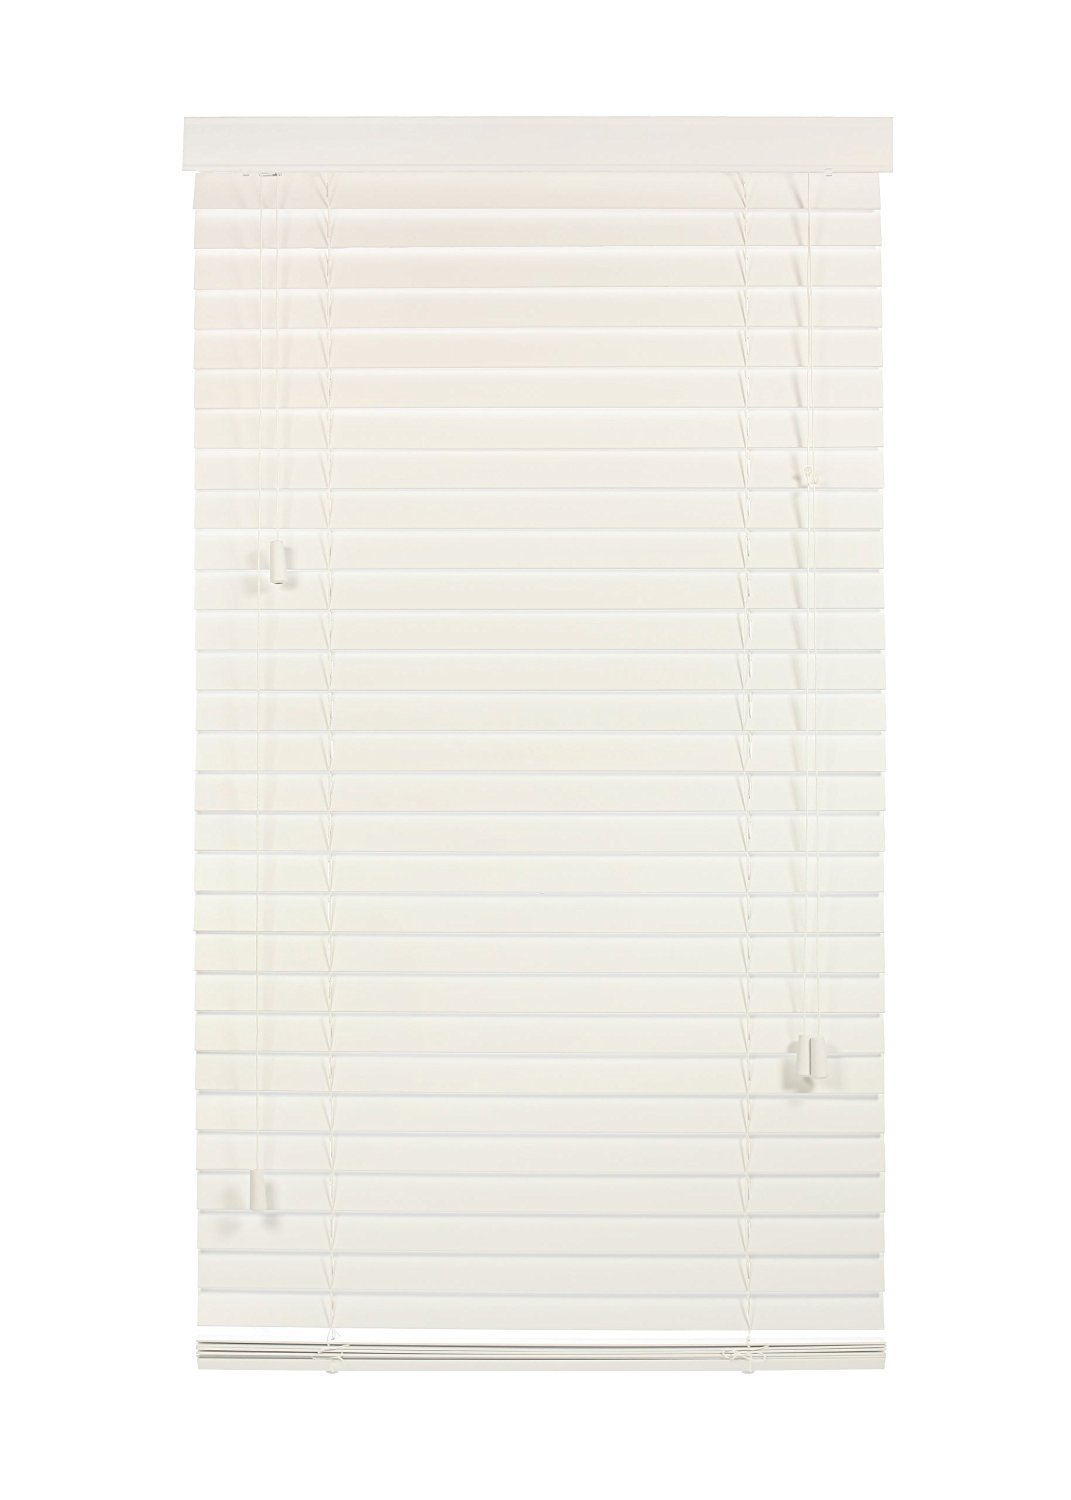 "Luxr Blinds Custom-Made 100% Real Wood 2"" Slats Venetian Blinds: Easy-Mount Horizontal Window Treatment with Magnetic Valences- 36""X60"" Length, White"